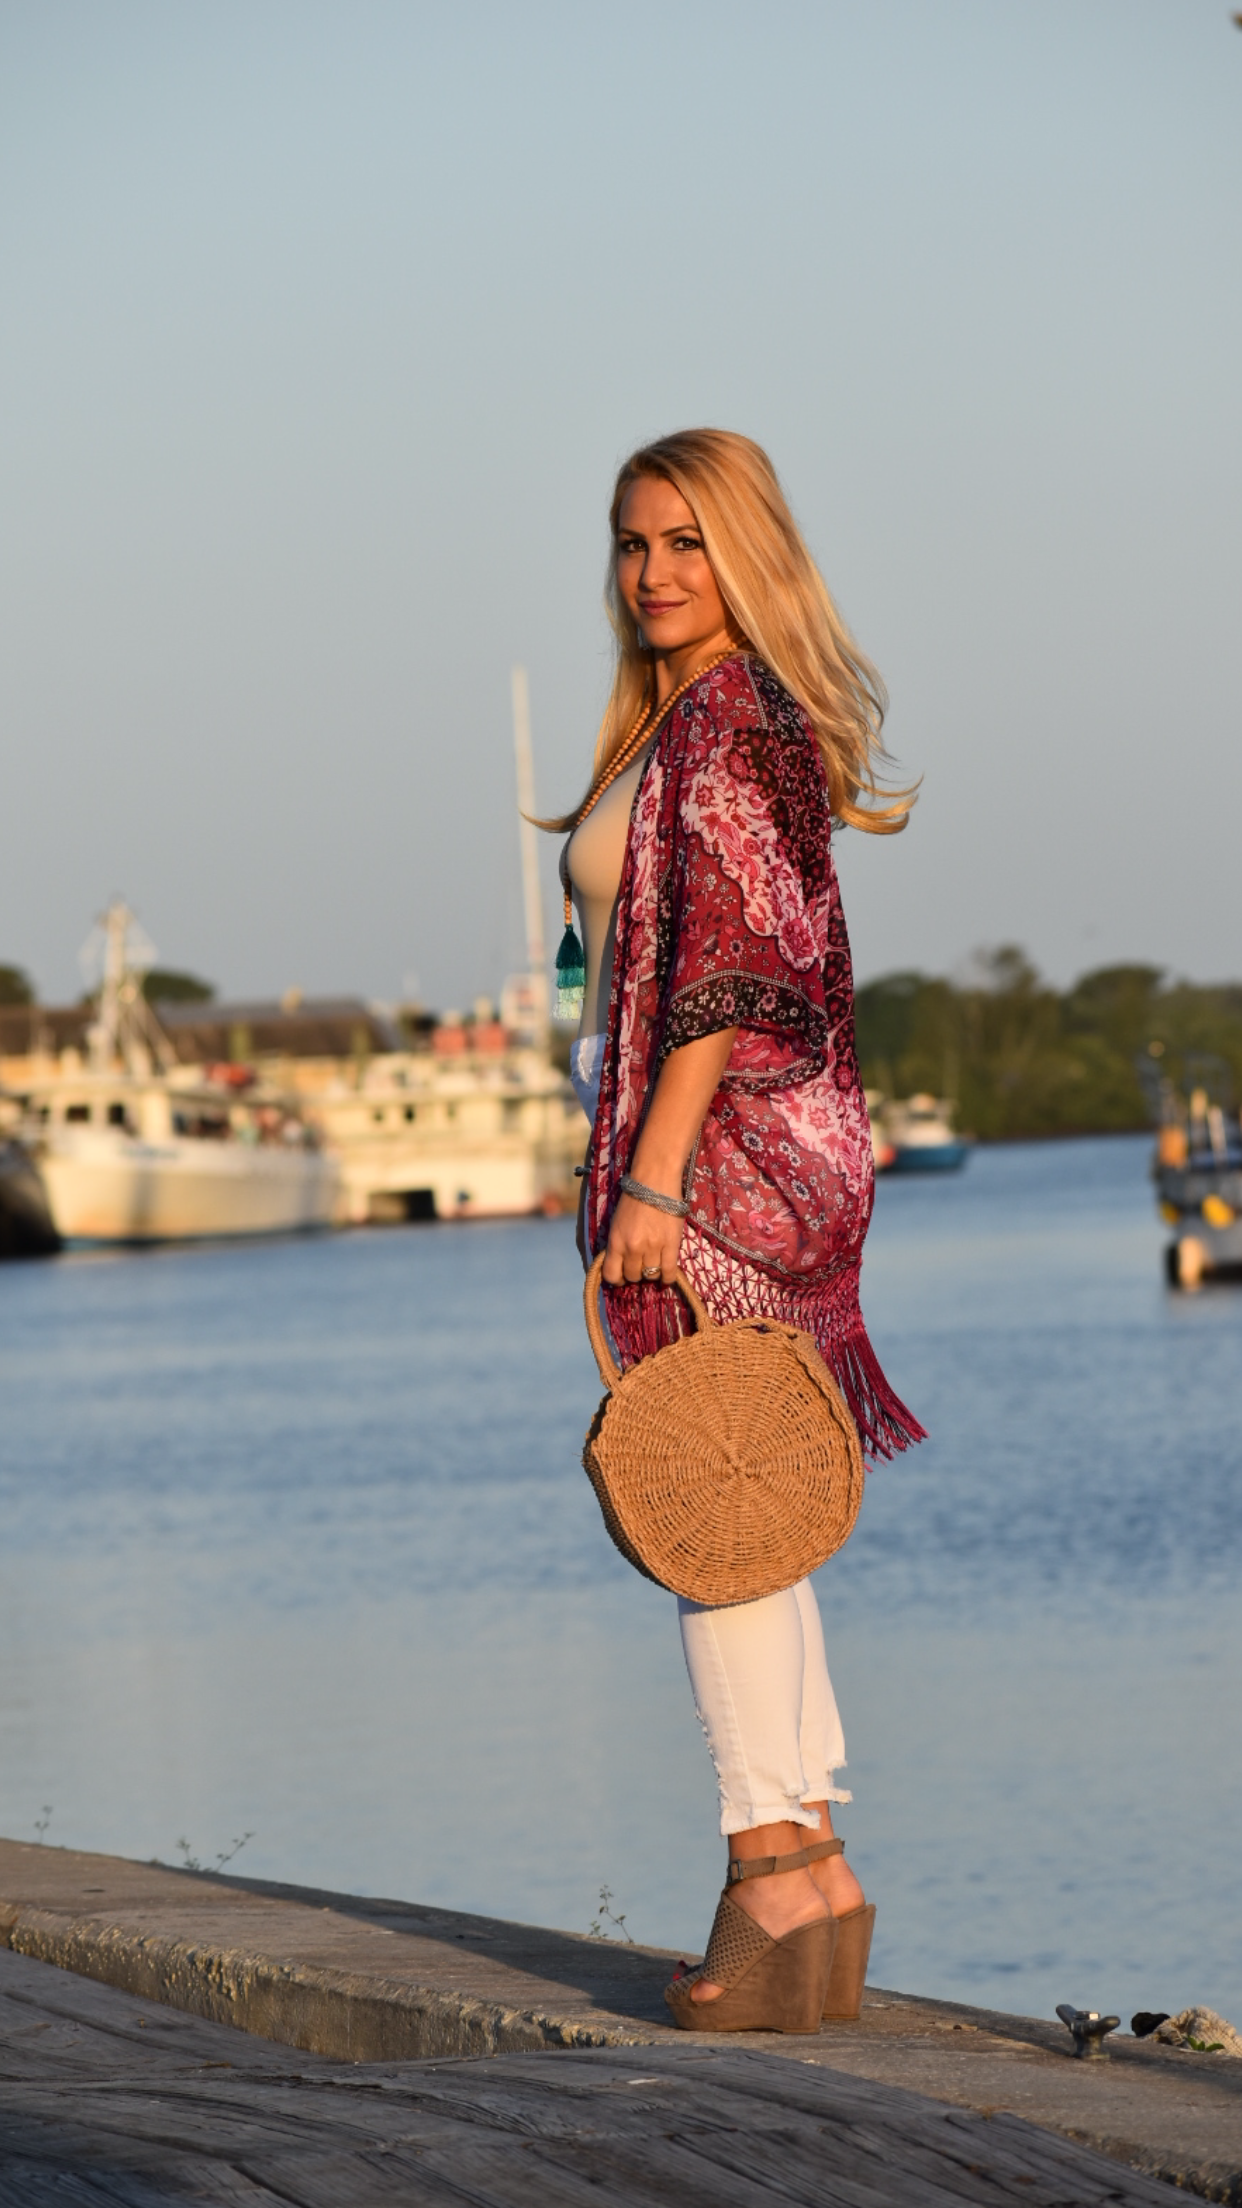 Beach Kimono, White Distressed Jeans, Tassel Necklace and Round Straw Handbag in Tarpon Springs Florida